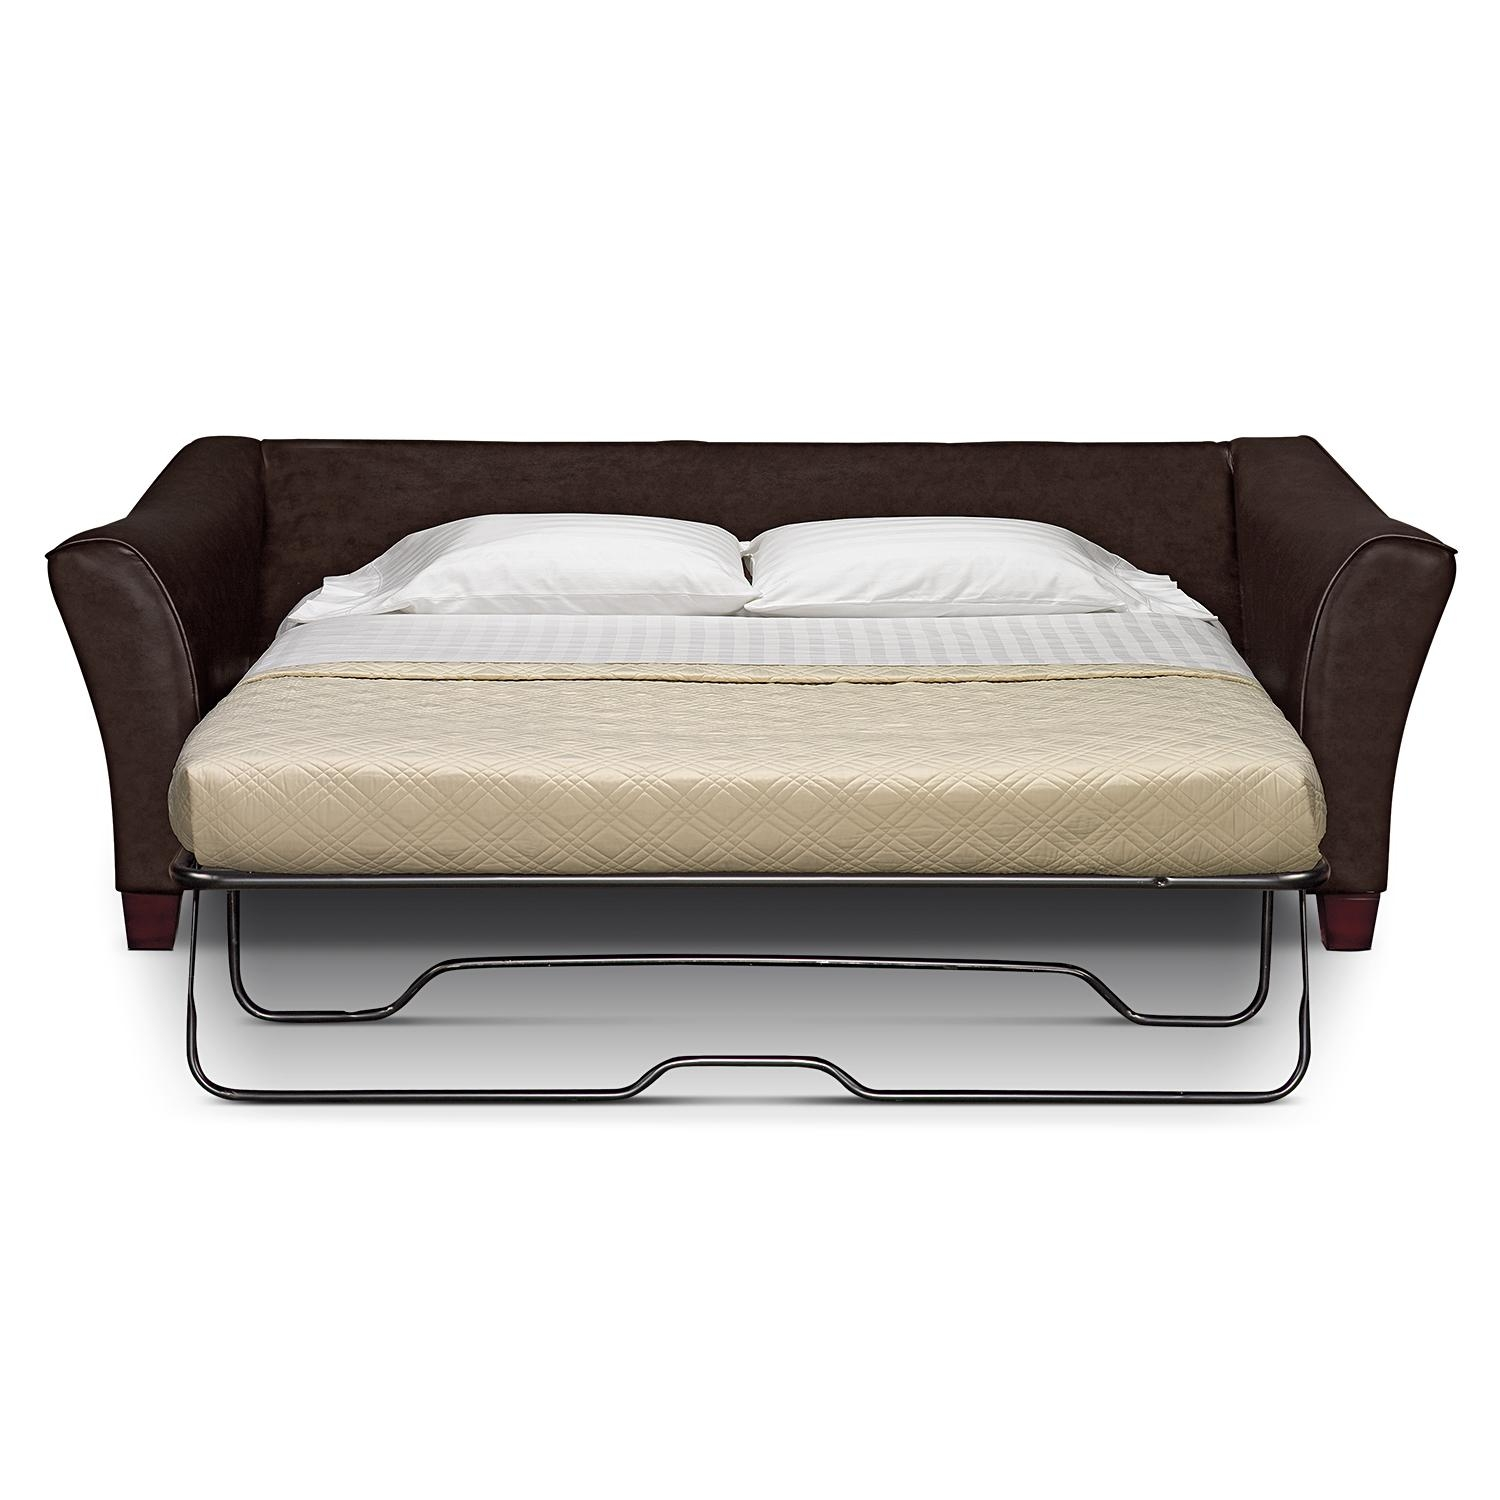 Sheets For Sofa Bed Mattress | Sofa Gallery | Kengire Pertaining To Sheets For Sofa Beds Mattress (View 2 of 20)